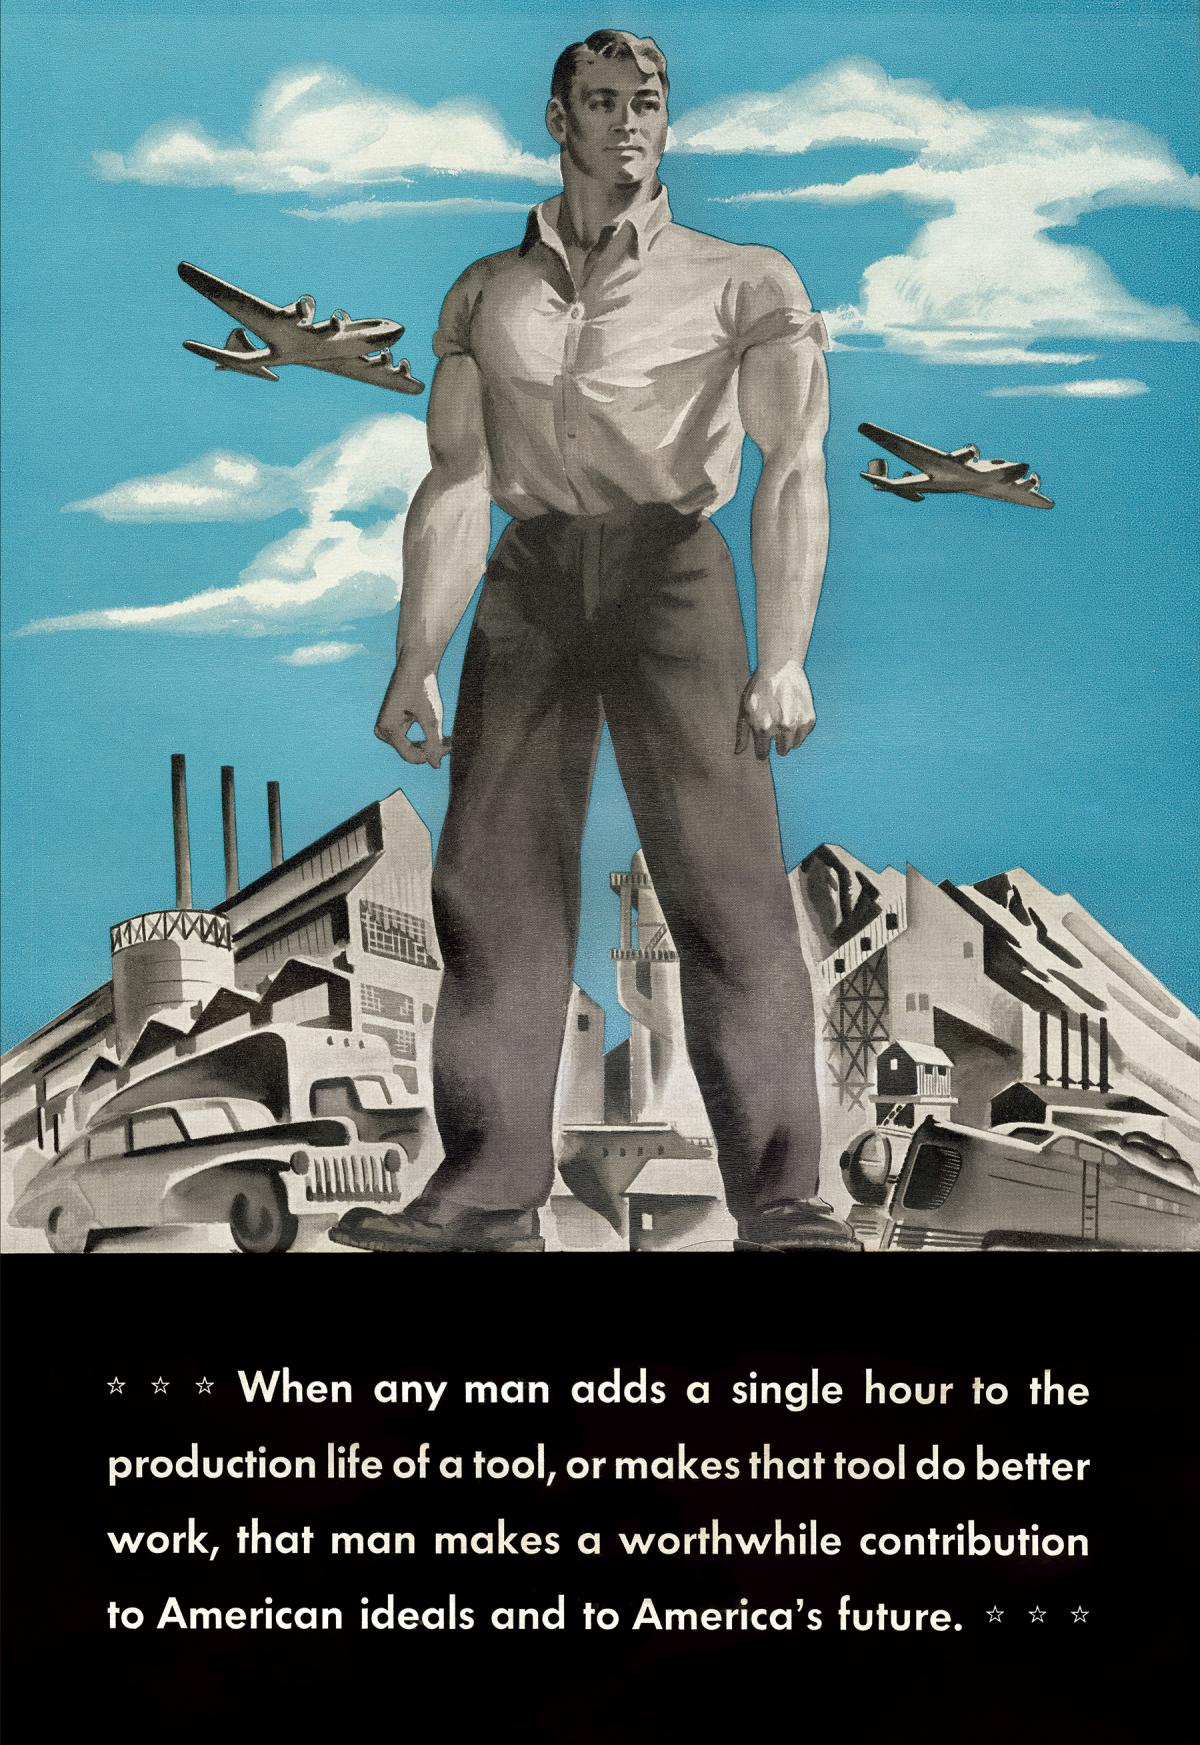 antique poster of a man standing in front of a blue sky, industrial tools behind him